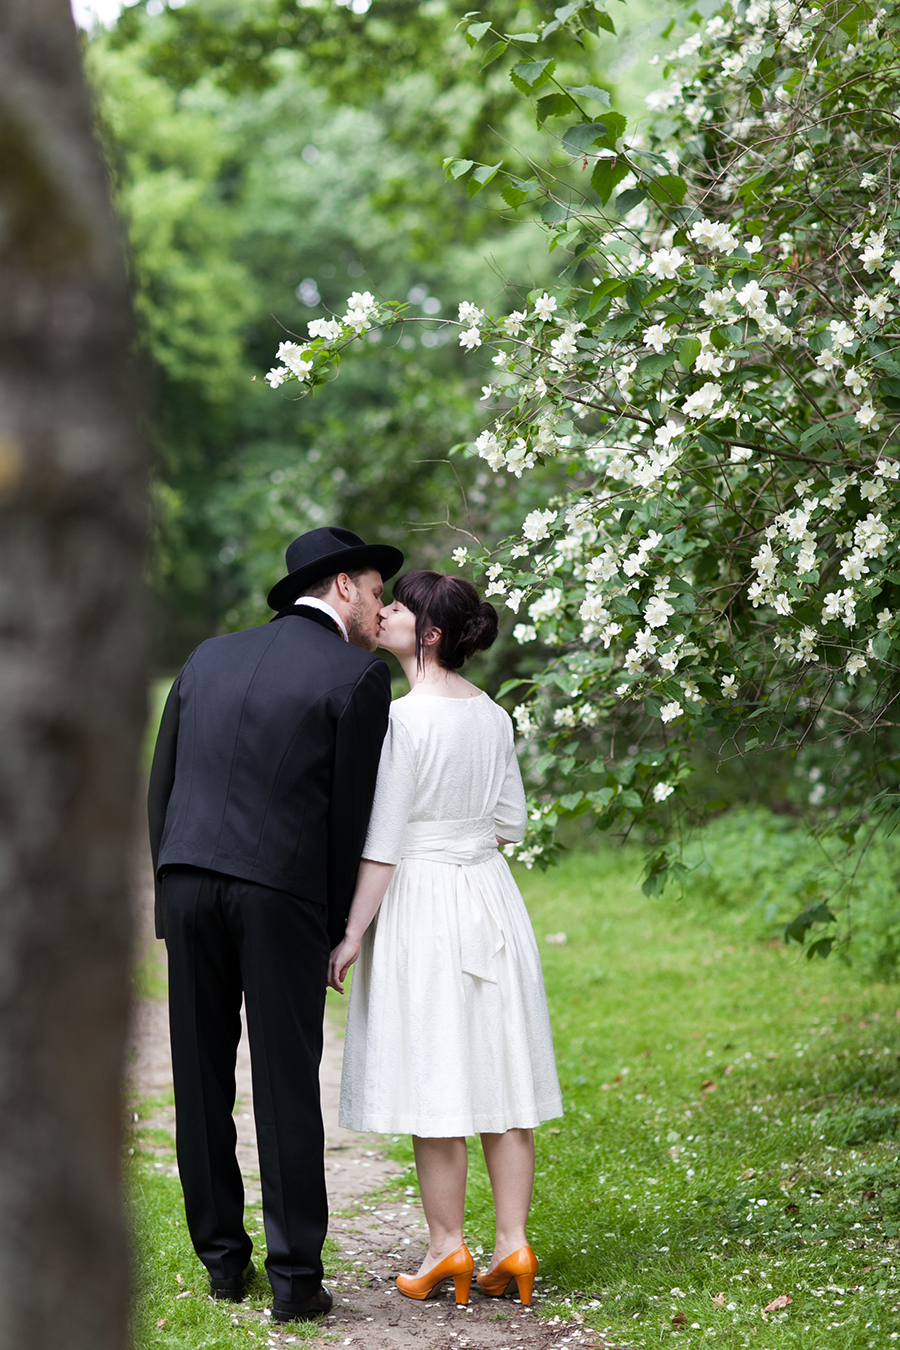 A groom kissing his bride under a tree.